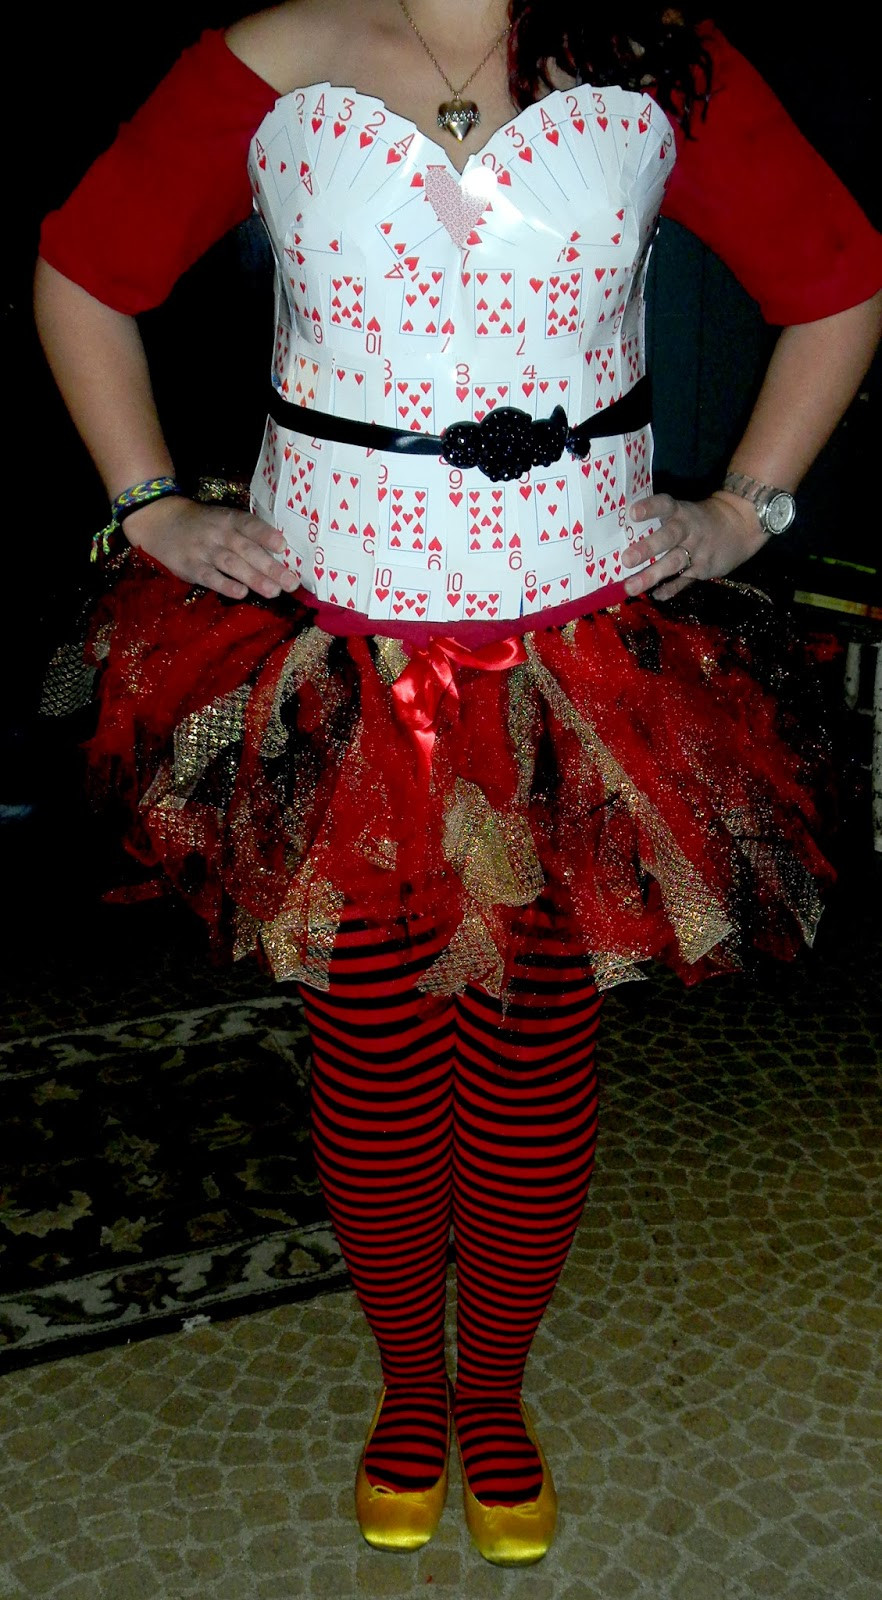 Best ideas about DIY Queen Of Hearts Costume . Save or Pin The [Very Busy] Working Artist DIY Queen of Hearts Costume Now.